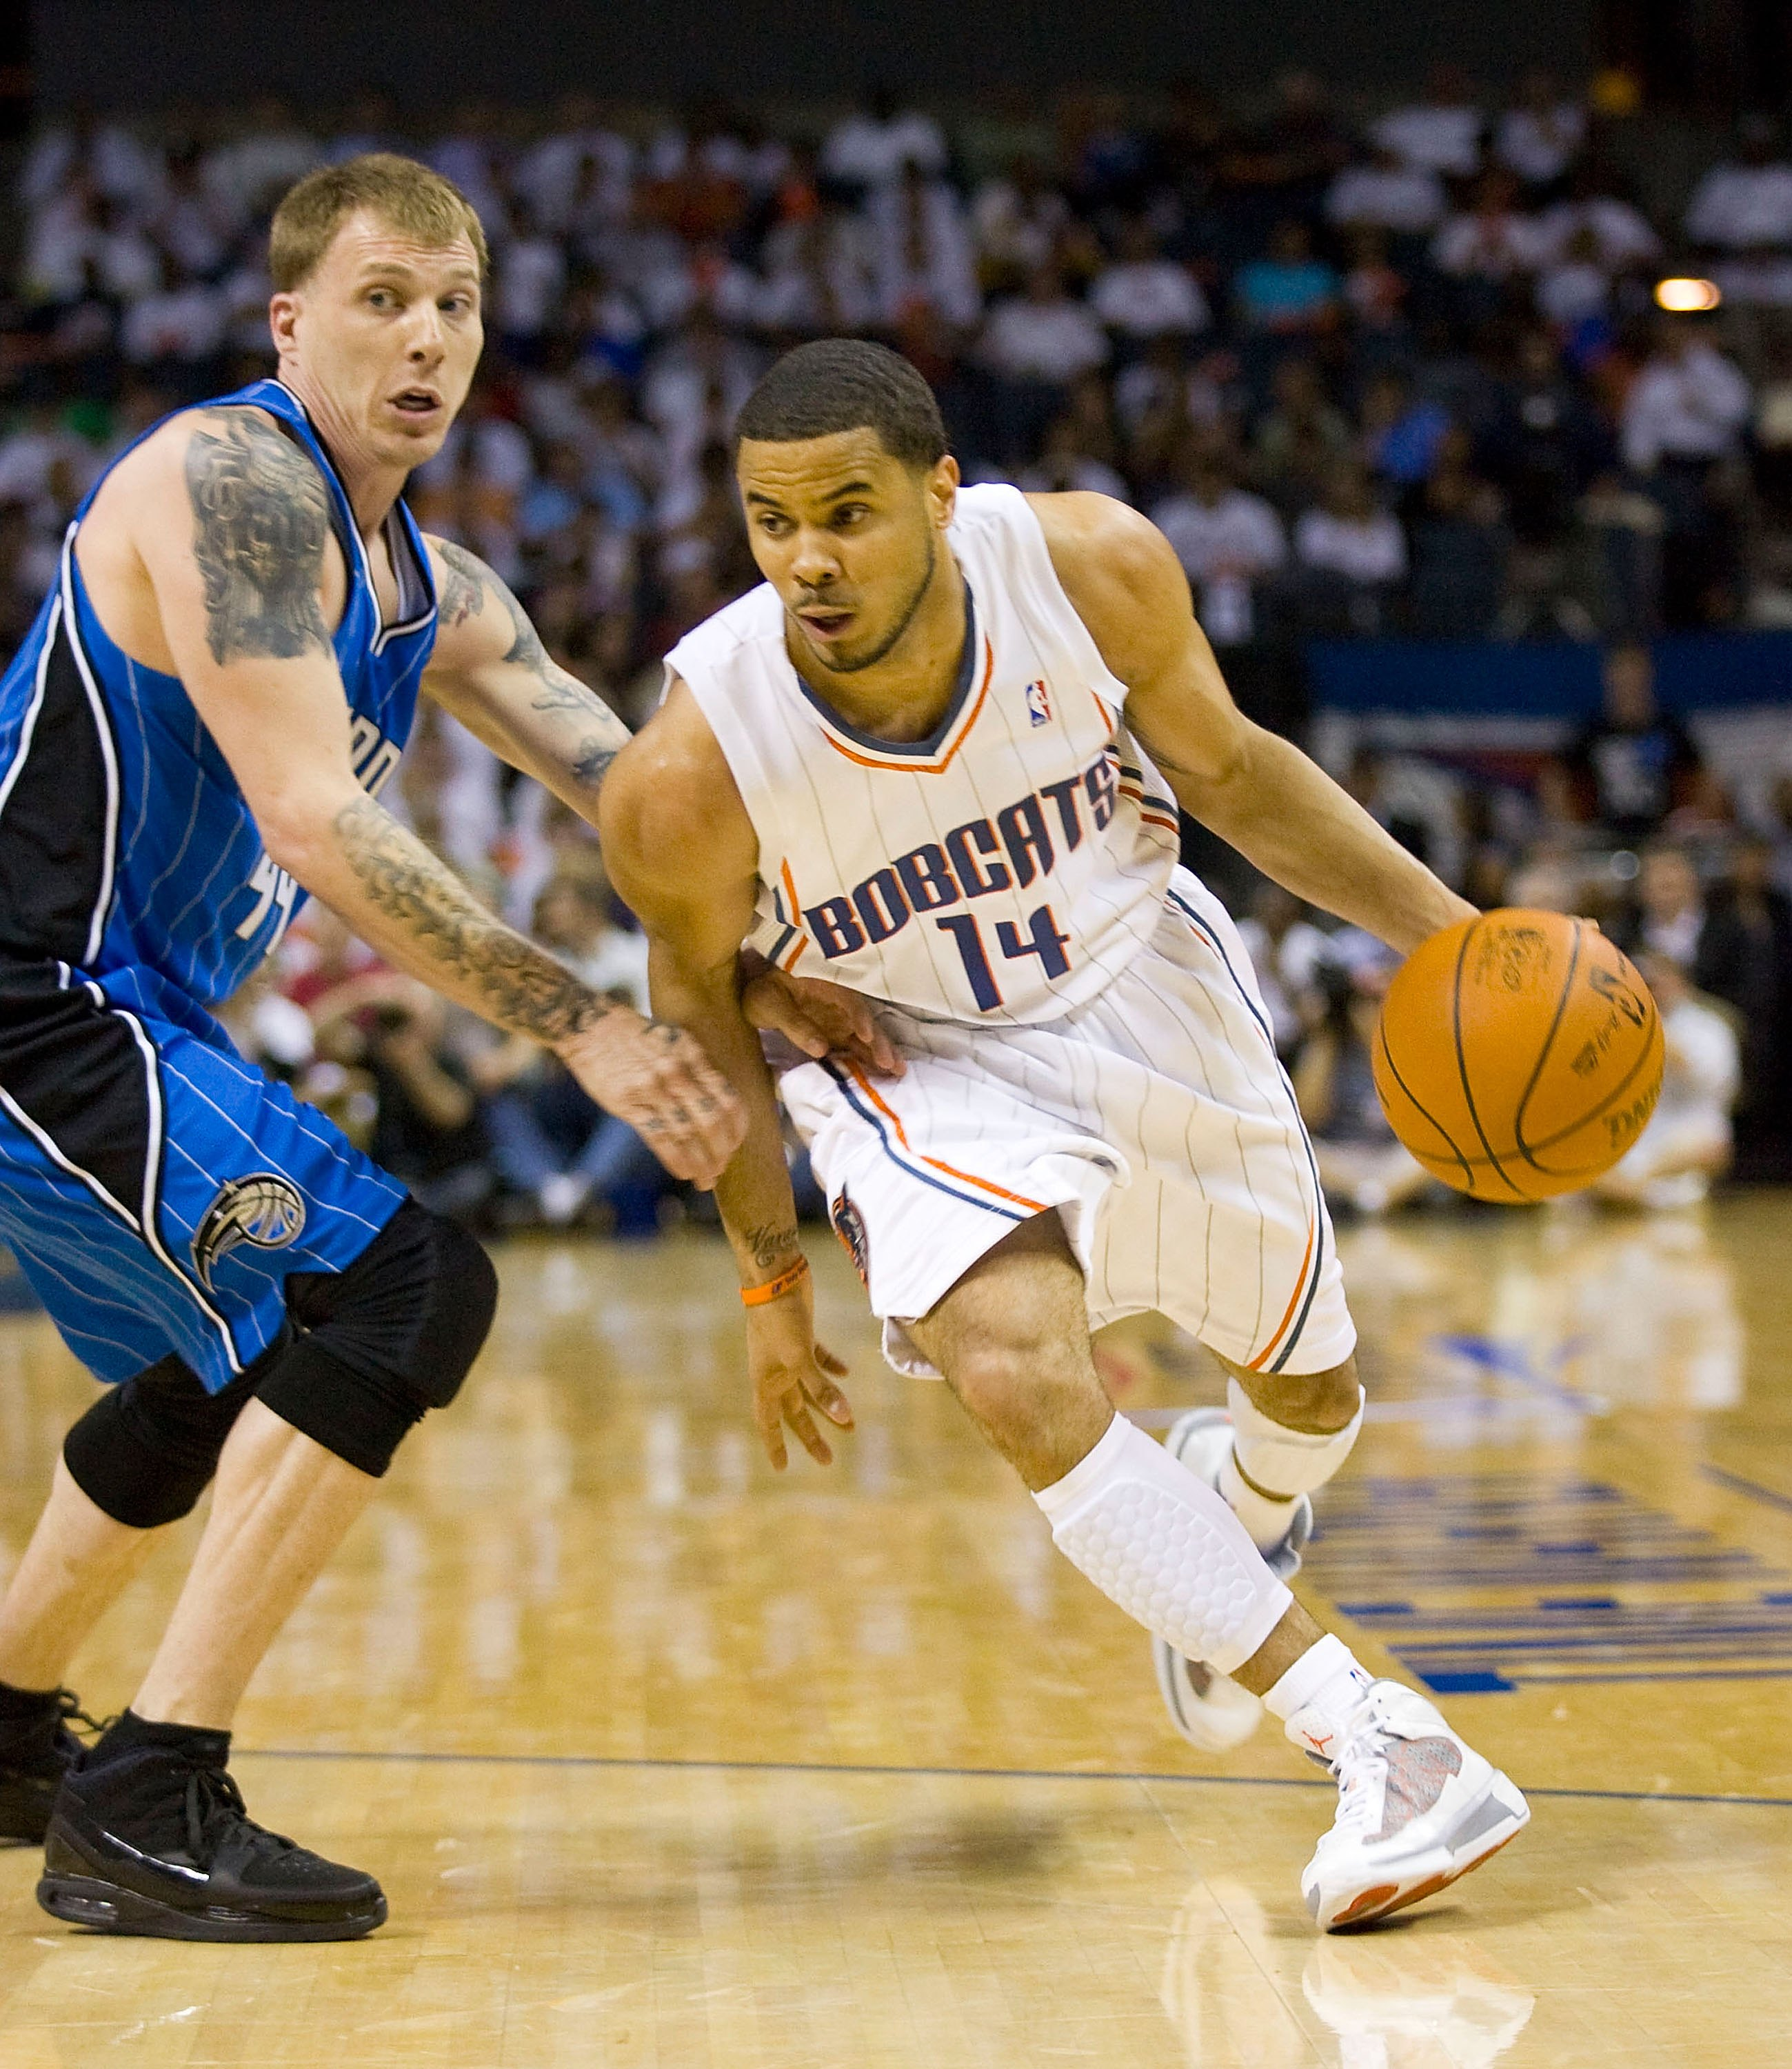 CHARLOTTE, NC - APRIL 26: D.J. Augustin #14 of the Charlotte Bobcats dribbles past Jason Williams #44 of the Orlando Magic at Time Warner Cable Arena on April 26, 2010 in Charlotte, North Carolina.  The Magic defeated the Bobcats 99-90 to complete the fou